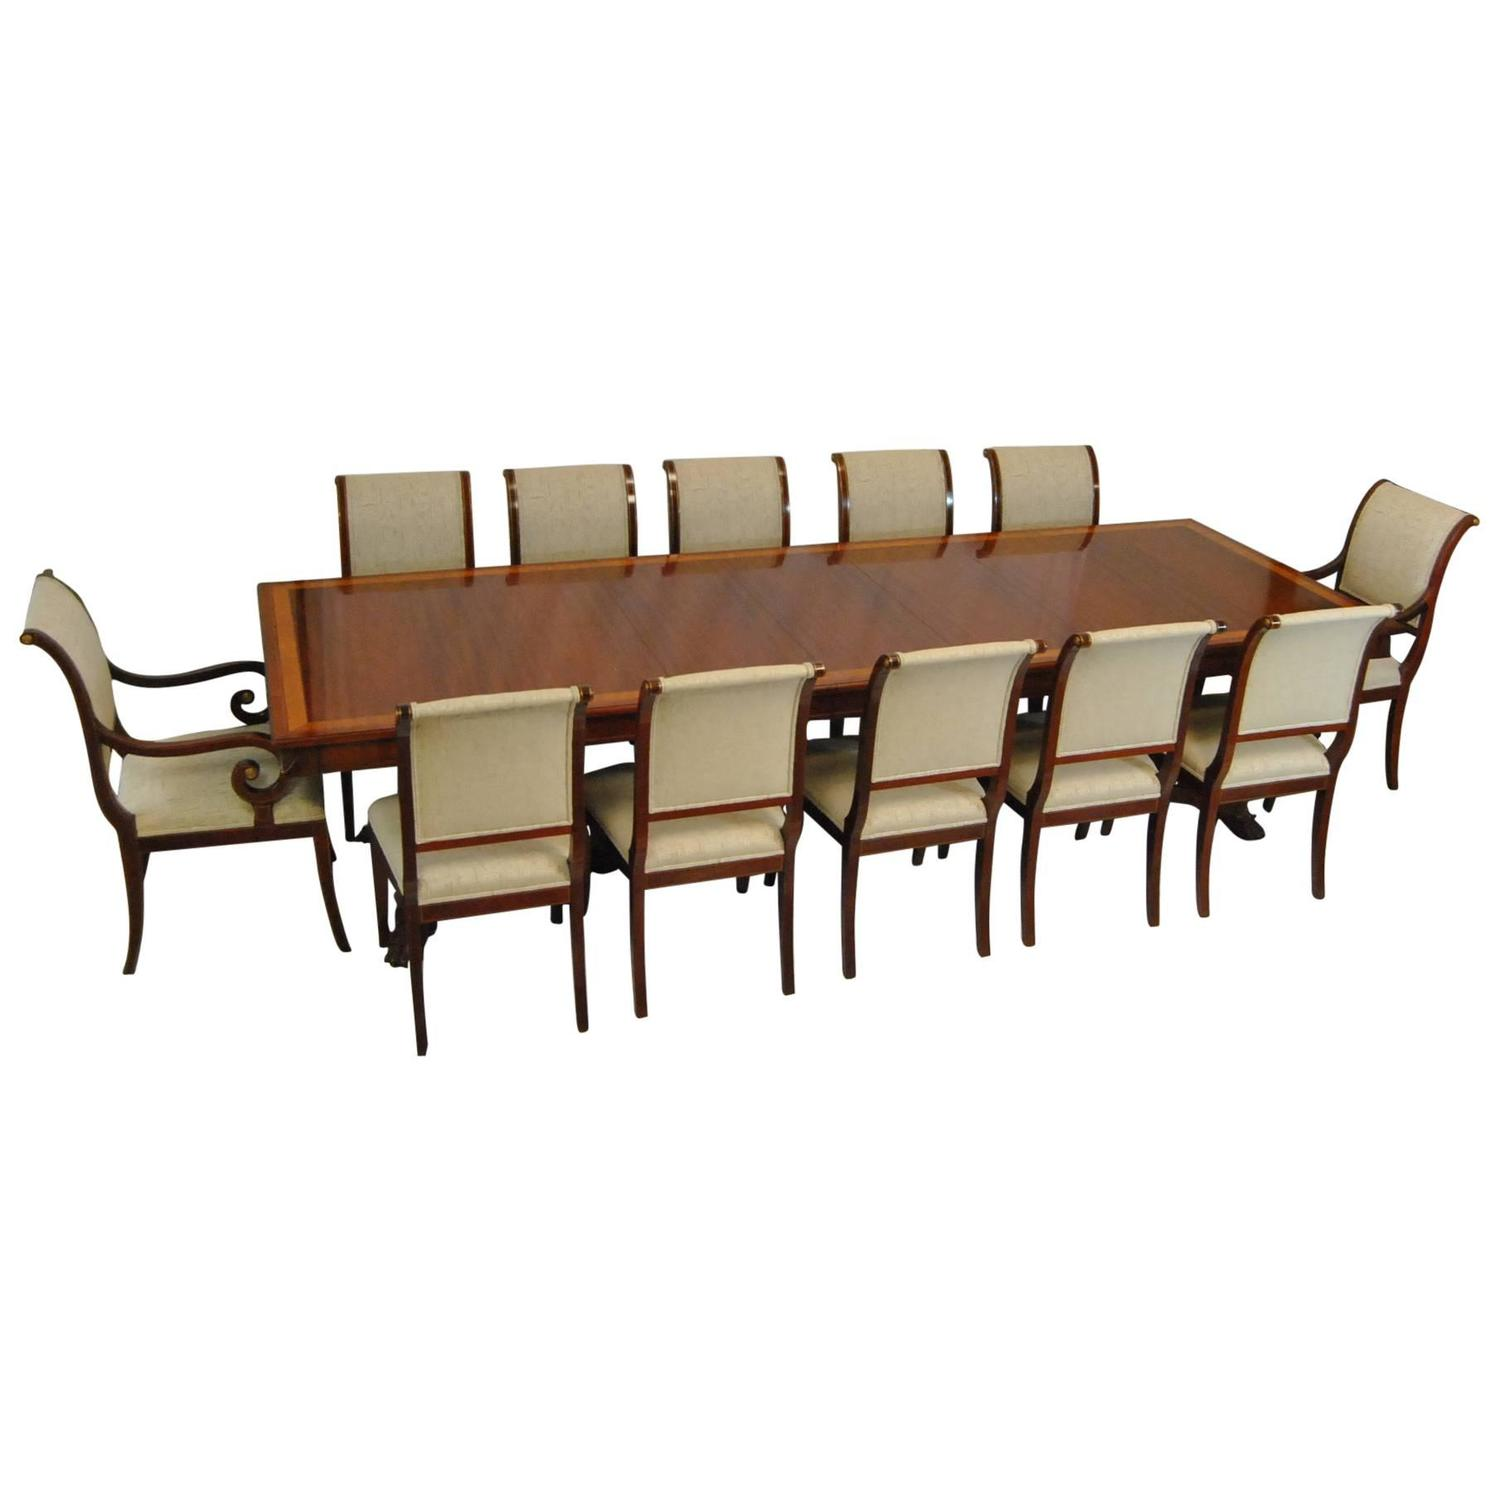 Dining Set 12 Chairs Mahogany Dining Table And 12 Chairs By Kindel Neoclassic